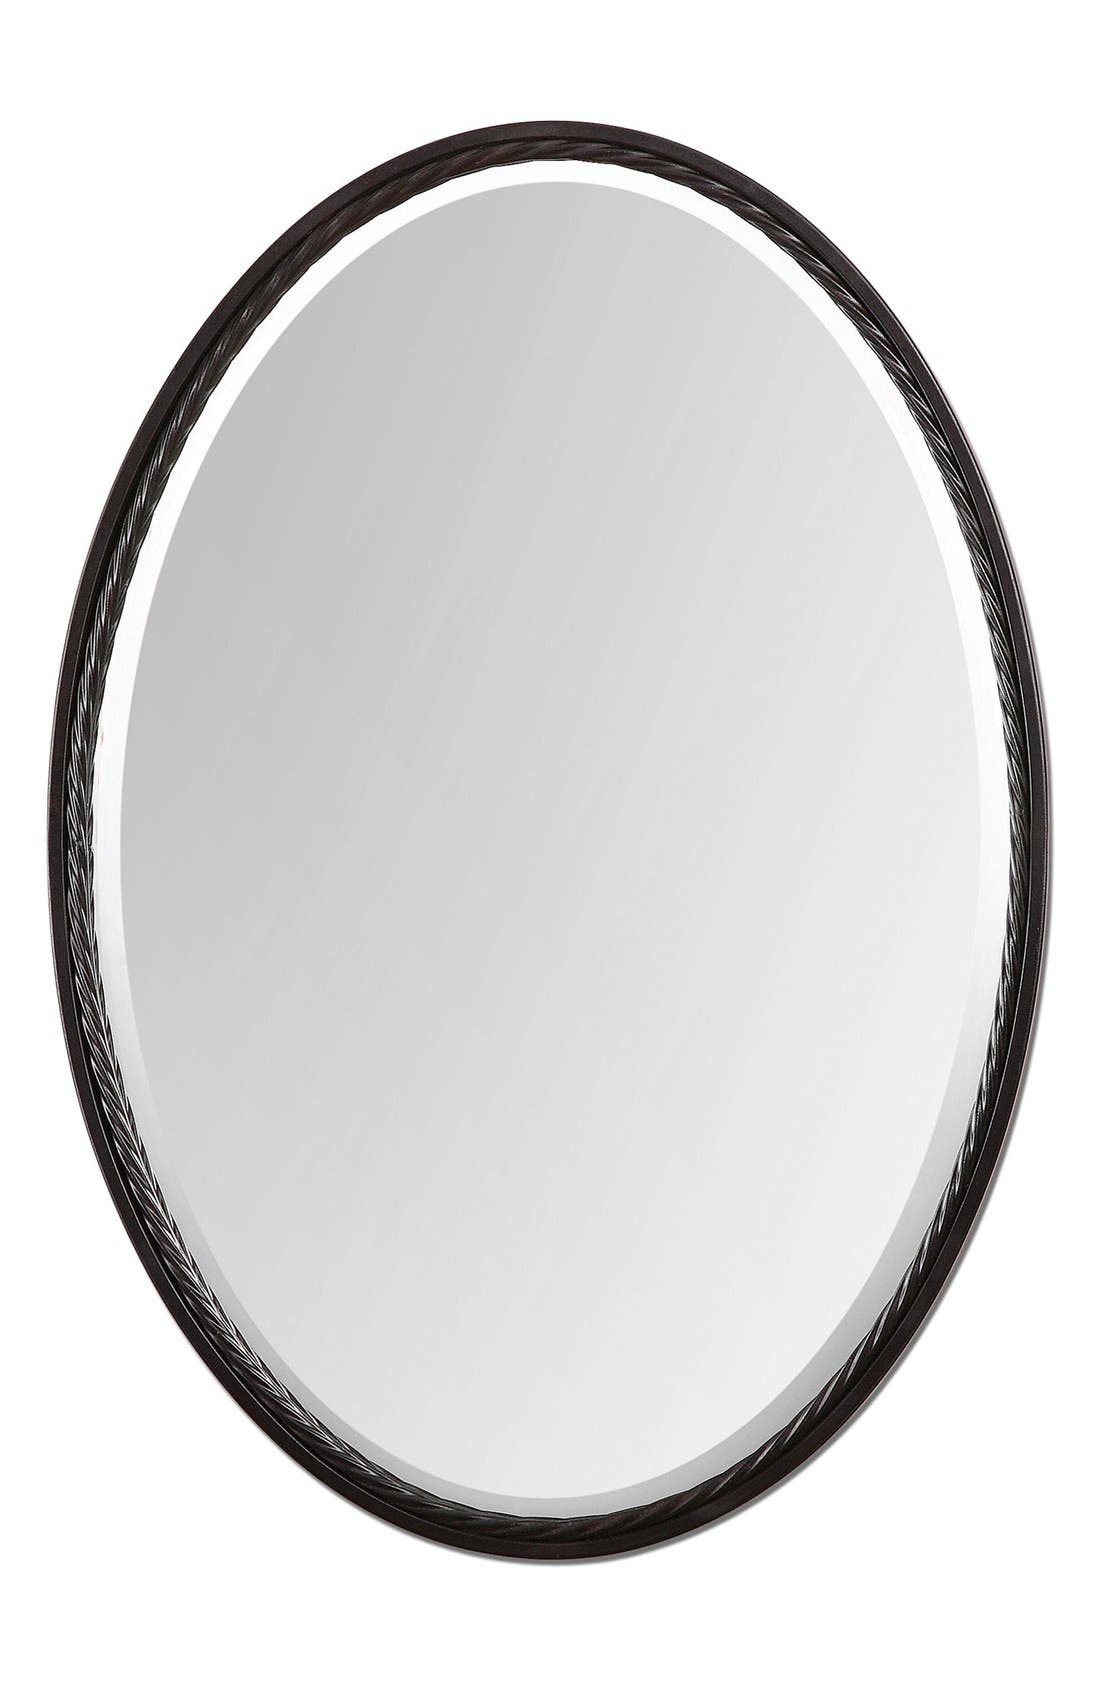 'Casalina' Oval Mirror,                             Main thumbnail 2, color,